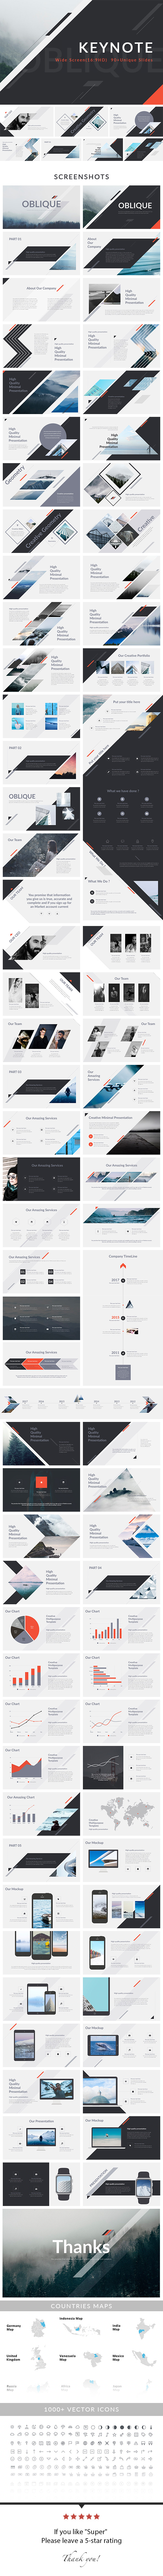 Oblique - Keynote Presentation Template - Abstract Keynote Templates